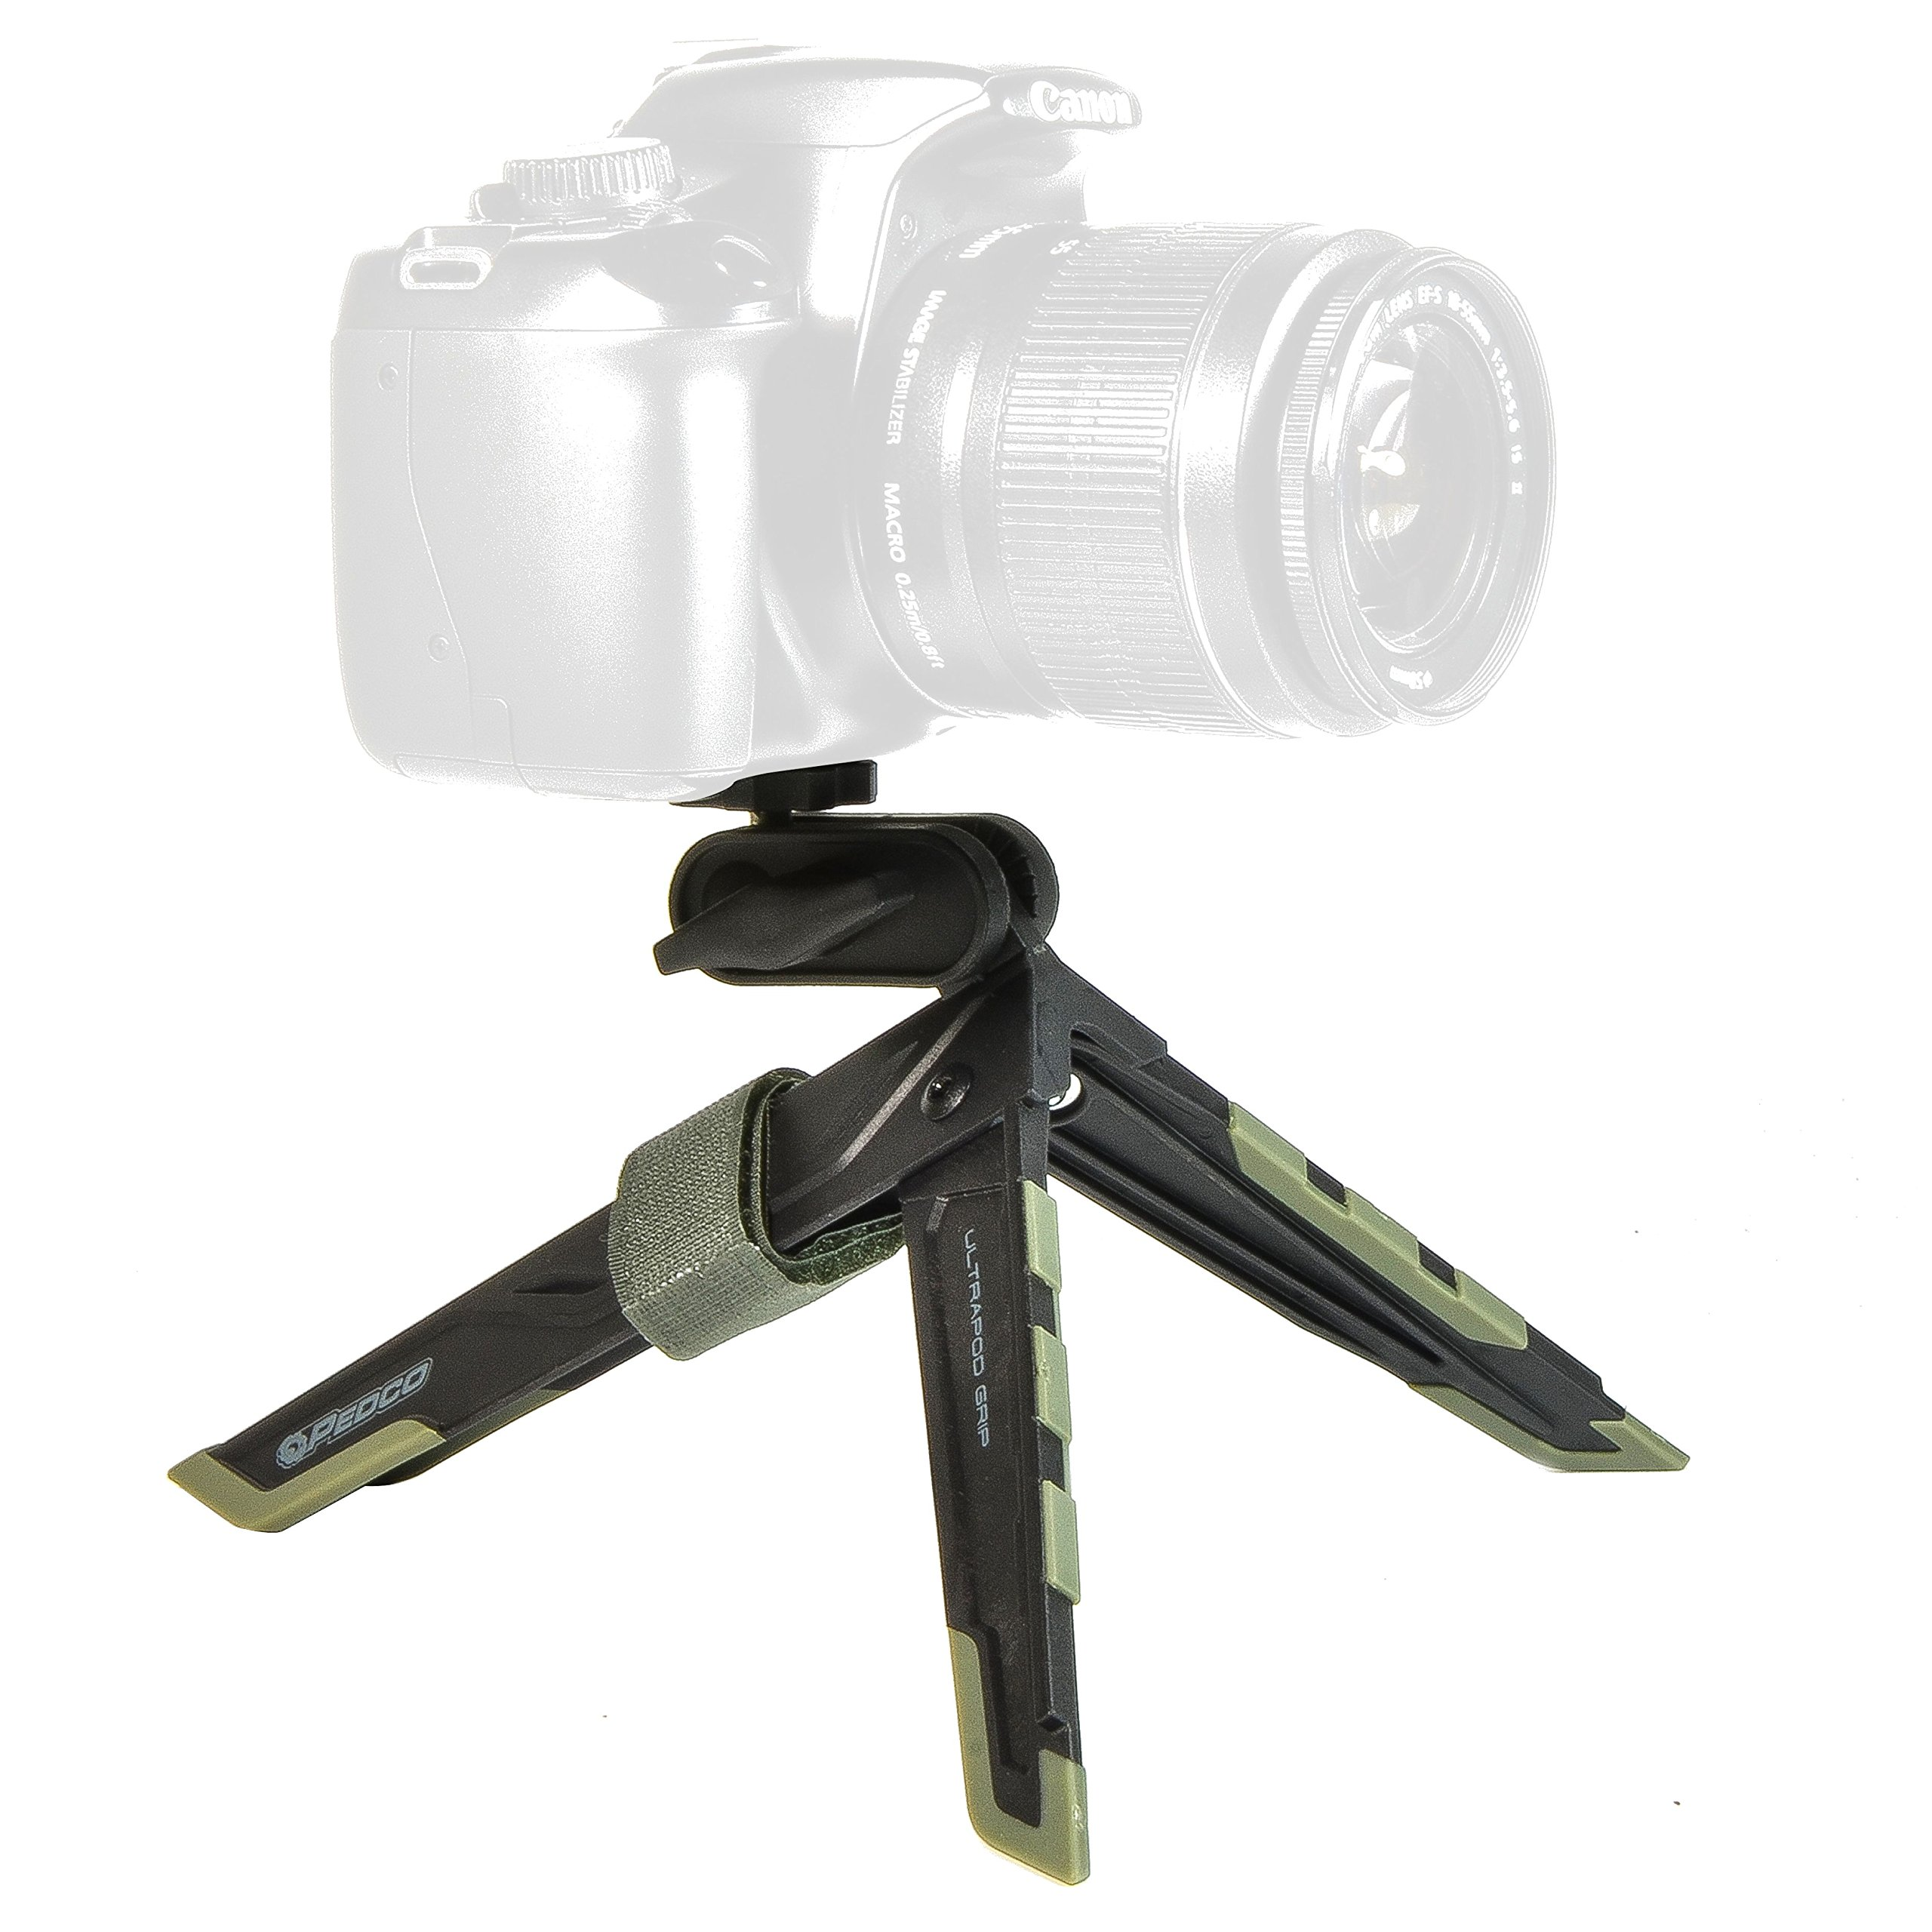 PEDCO UltraPod Grip Lightweight Camera Tripod by PEDCO